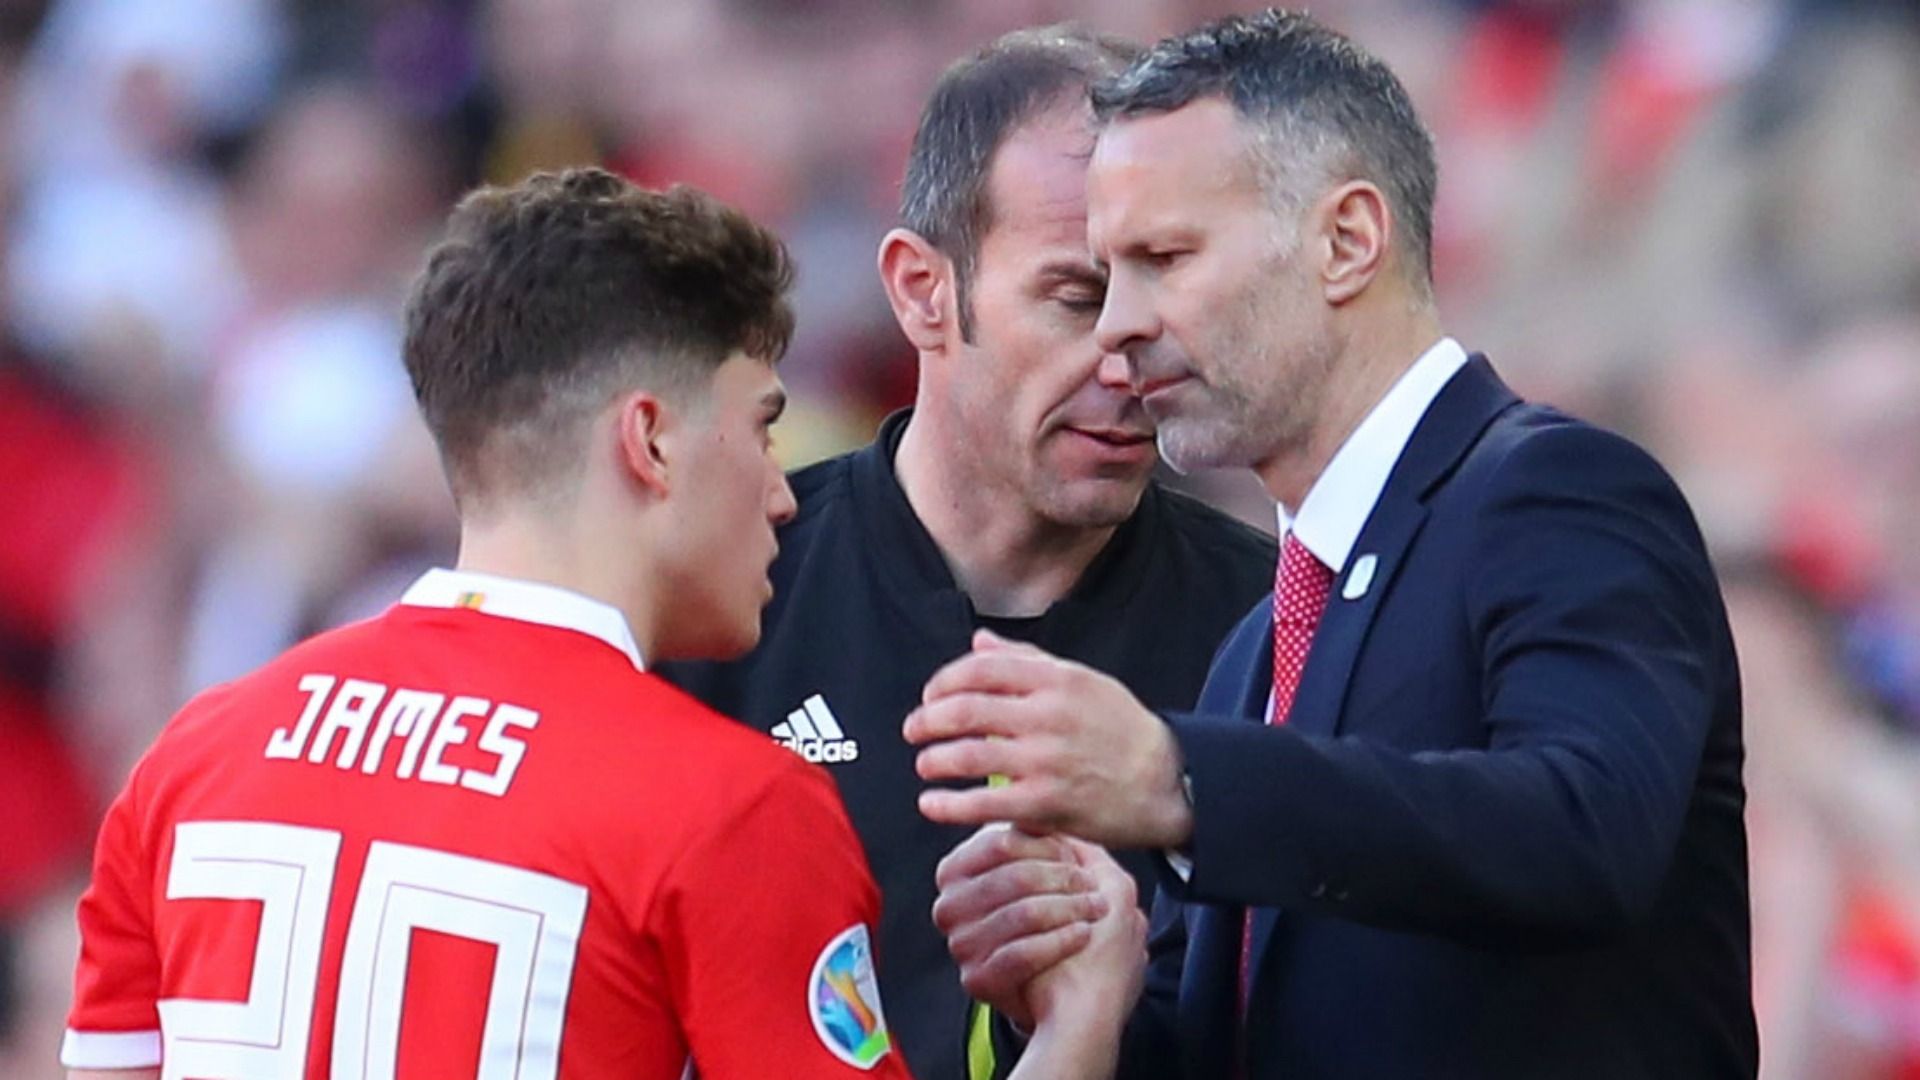 Giggs tells James to 'enjoy the challenge' of playing for Manchester United